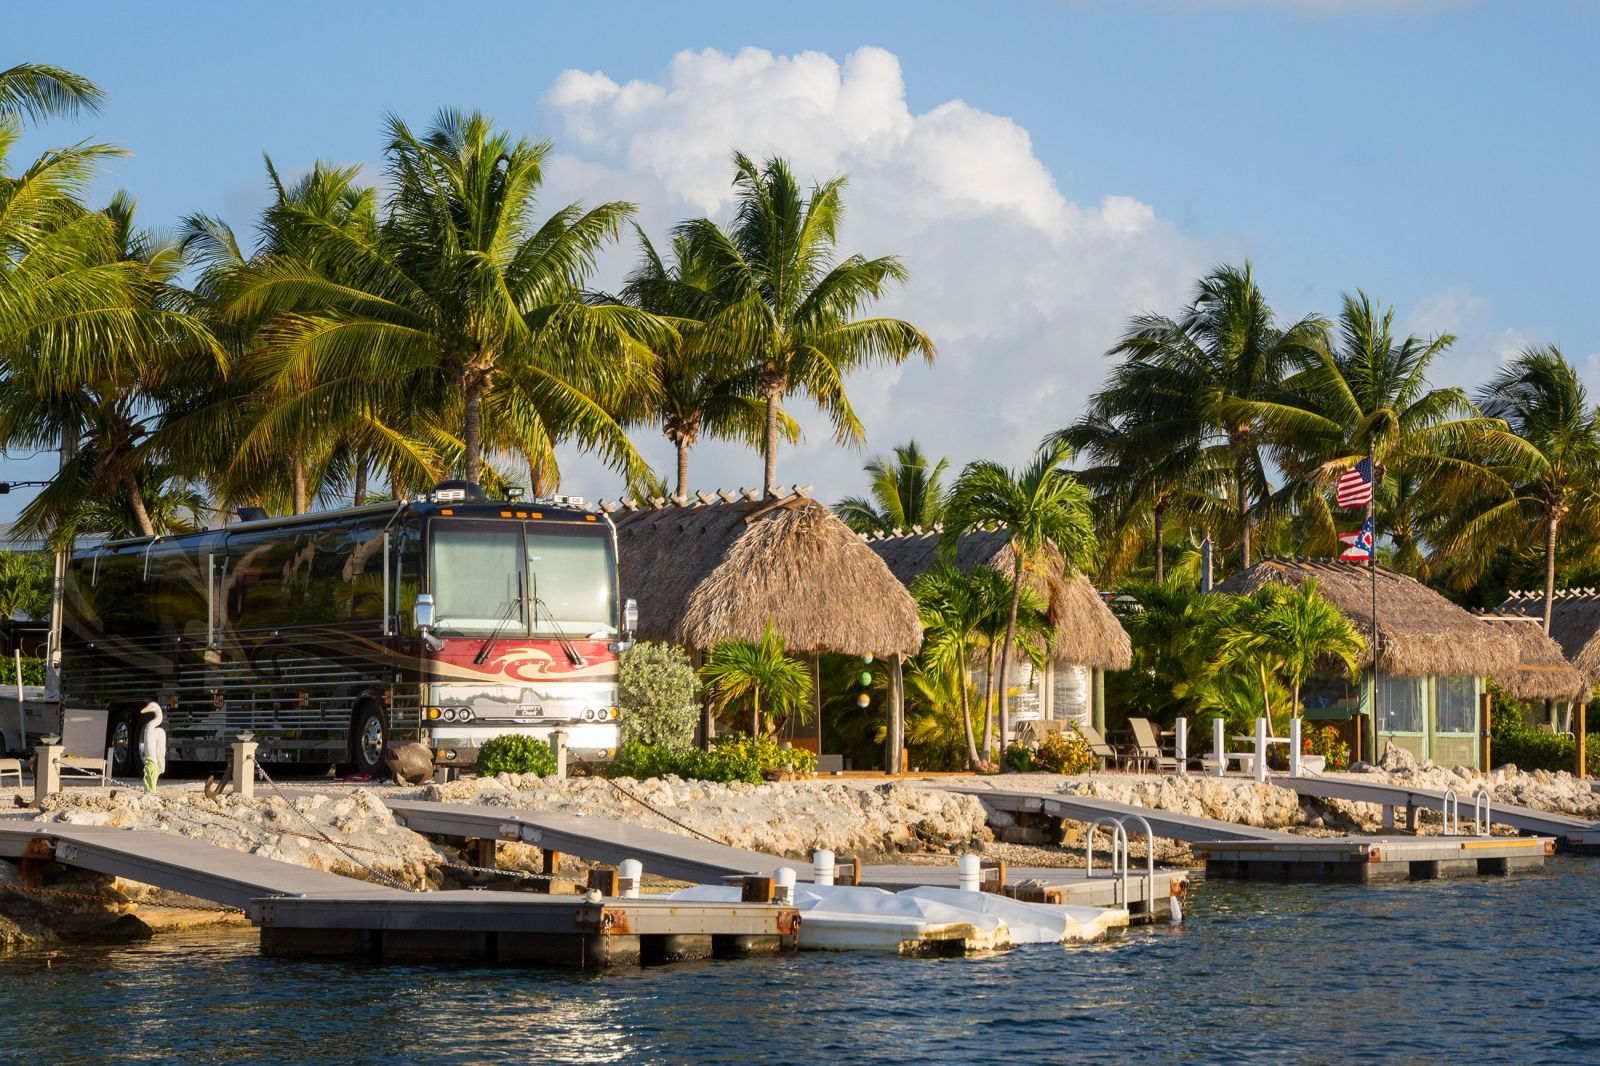 Blue Water Key Key West Florida A Luxury Rv Resort Luxury Rv Resorts Camping Resort Rv Parks And Campgrounds